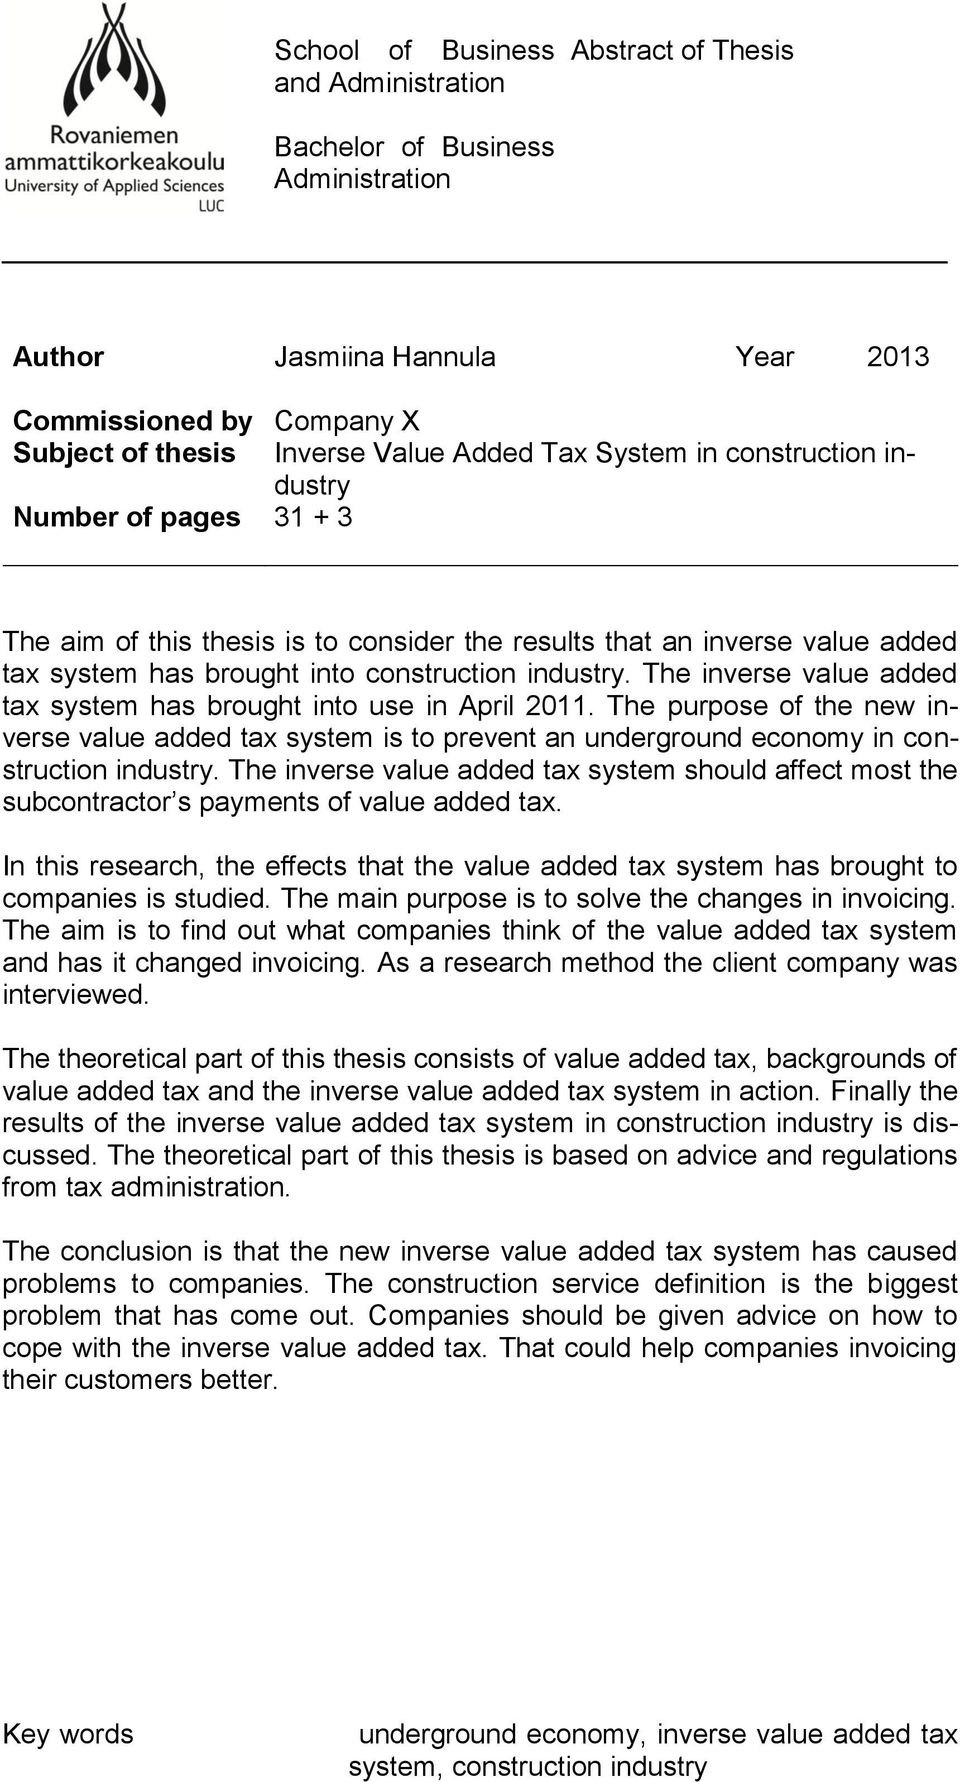 The inverse value added tax system has brought into use in April 2011. The purpose of the new inverse value added tax system is to prevent an underground economy in construction industry.